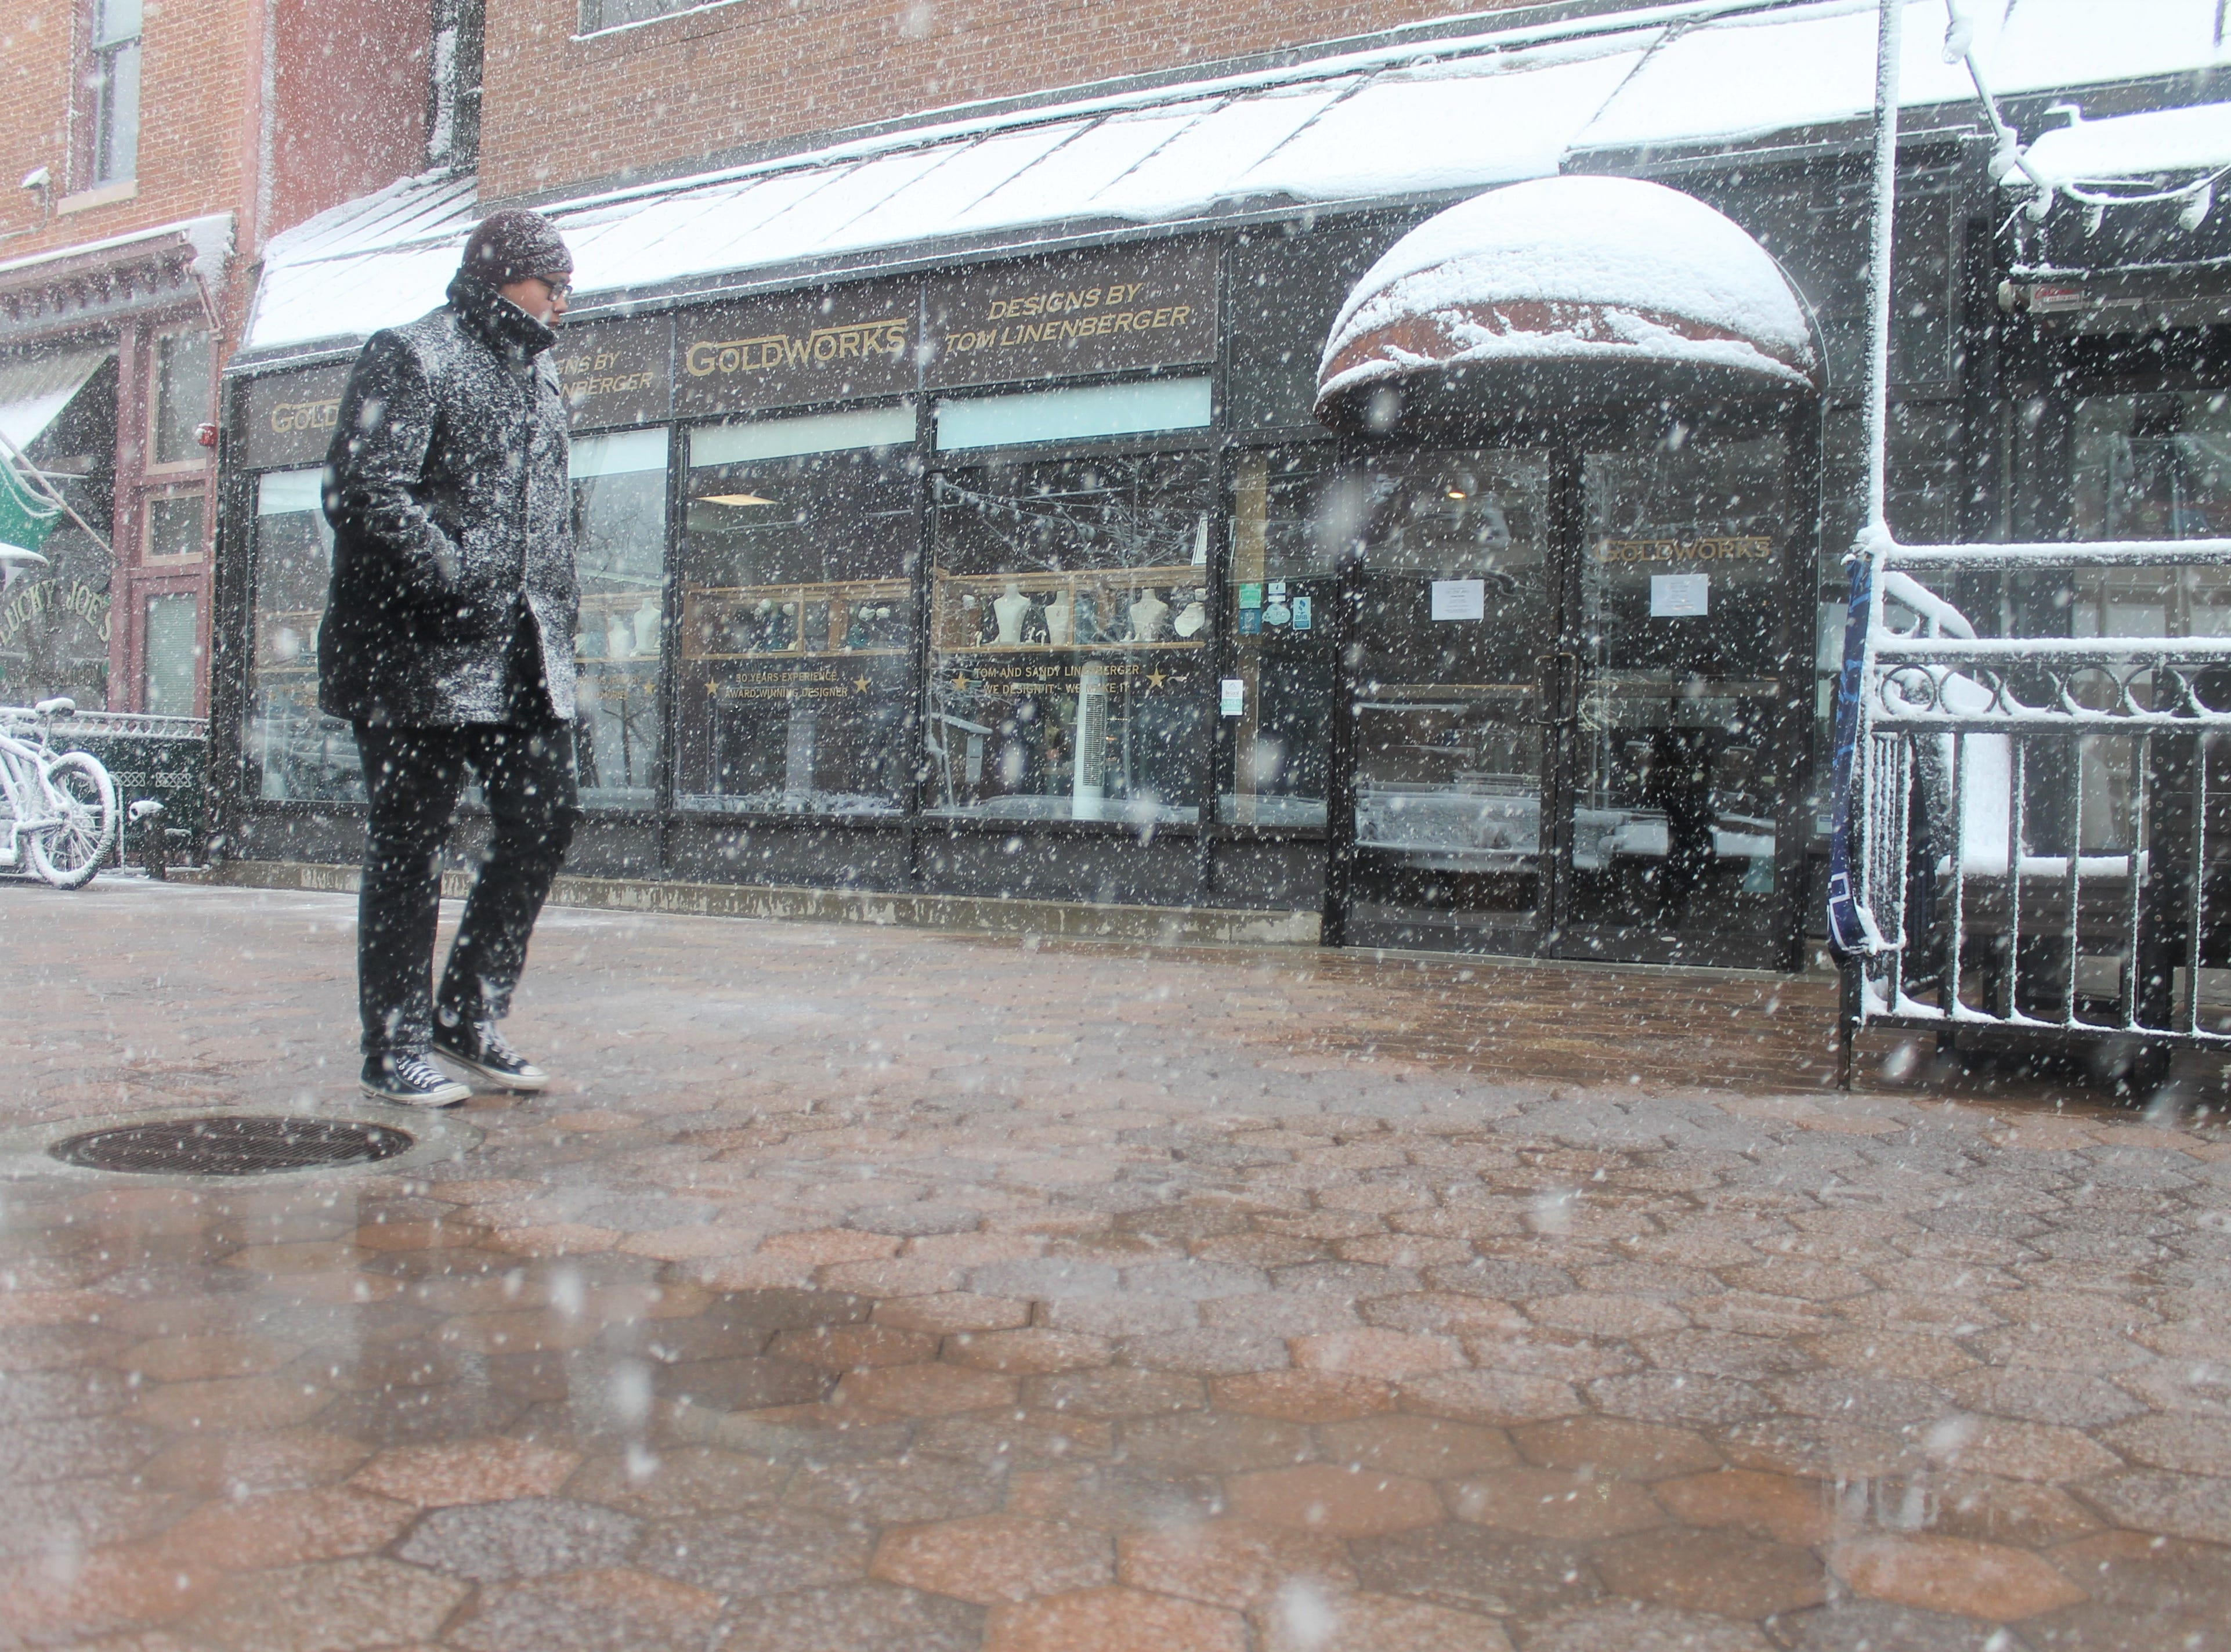 Teak Rouillard takes a stroll in the snow Wednesday, April 10, in Old Town. With about 30 minutes left of his lunch break, he decided to get out and enjoy the snow.